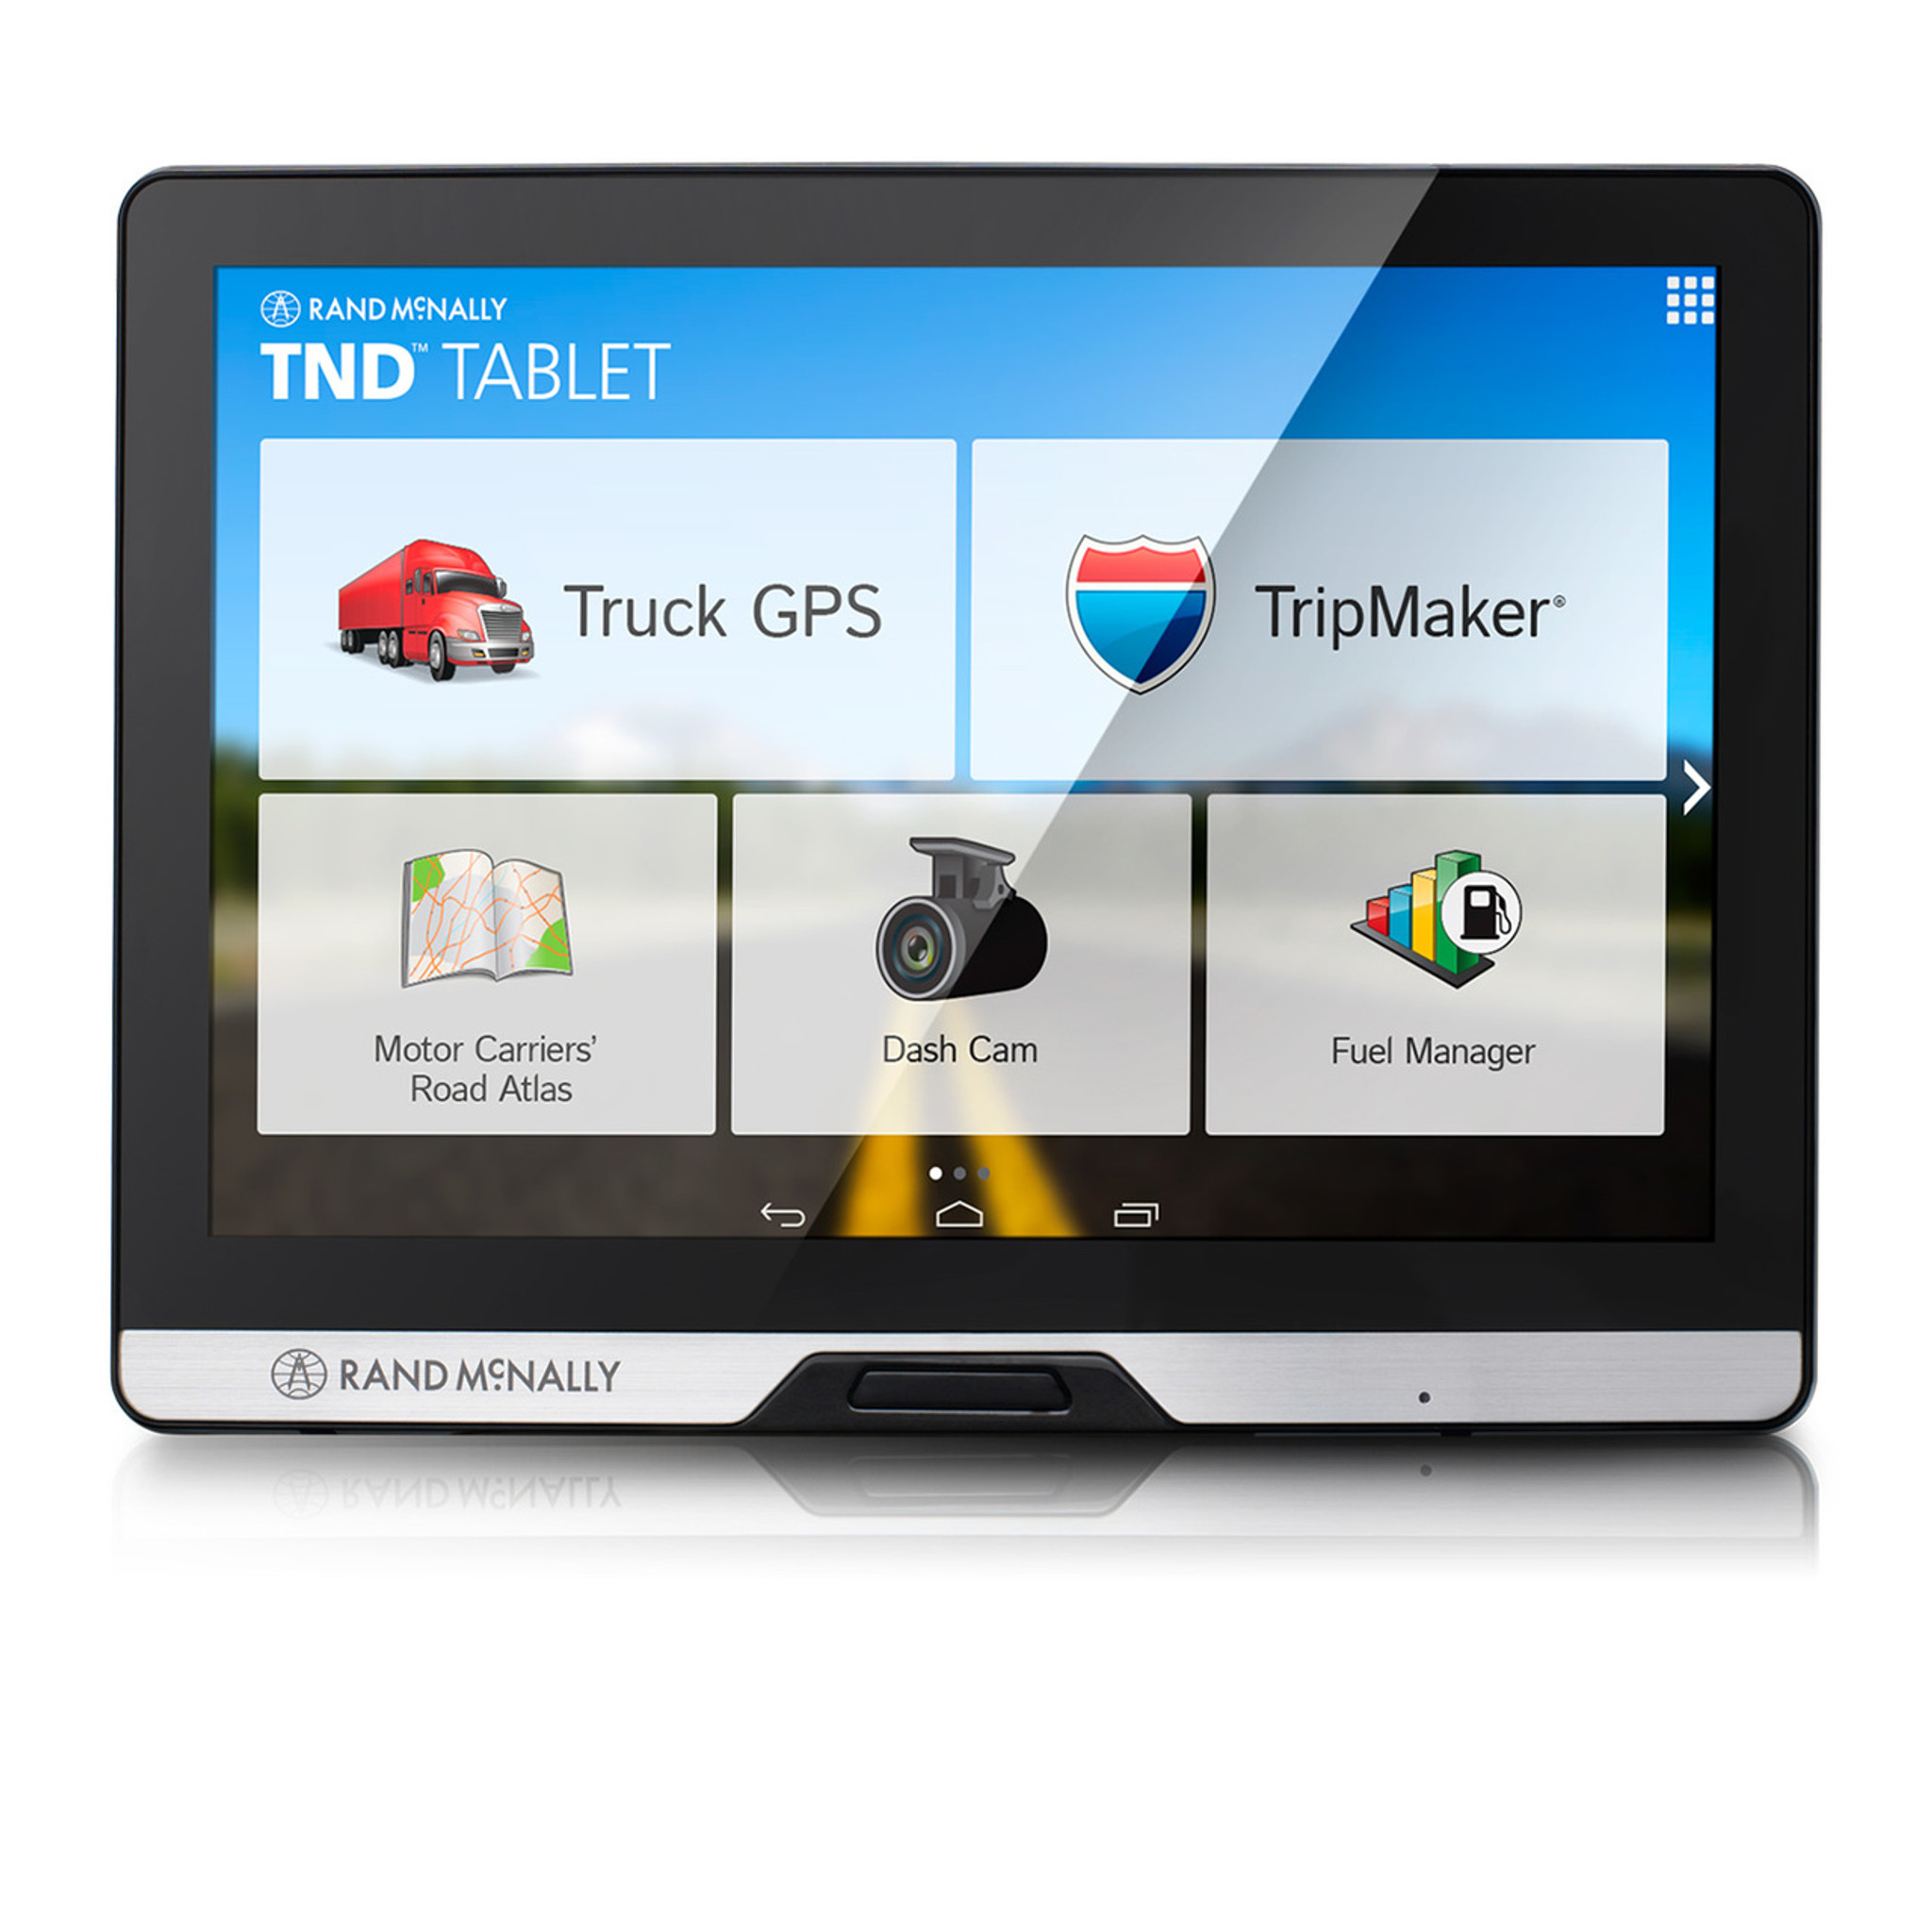 Rand Mcnally Gps >> Tnd Tablet 80 Truck Gps